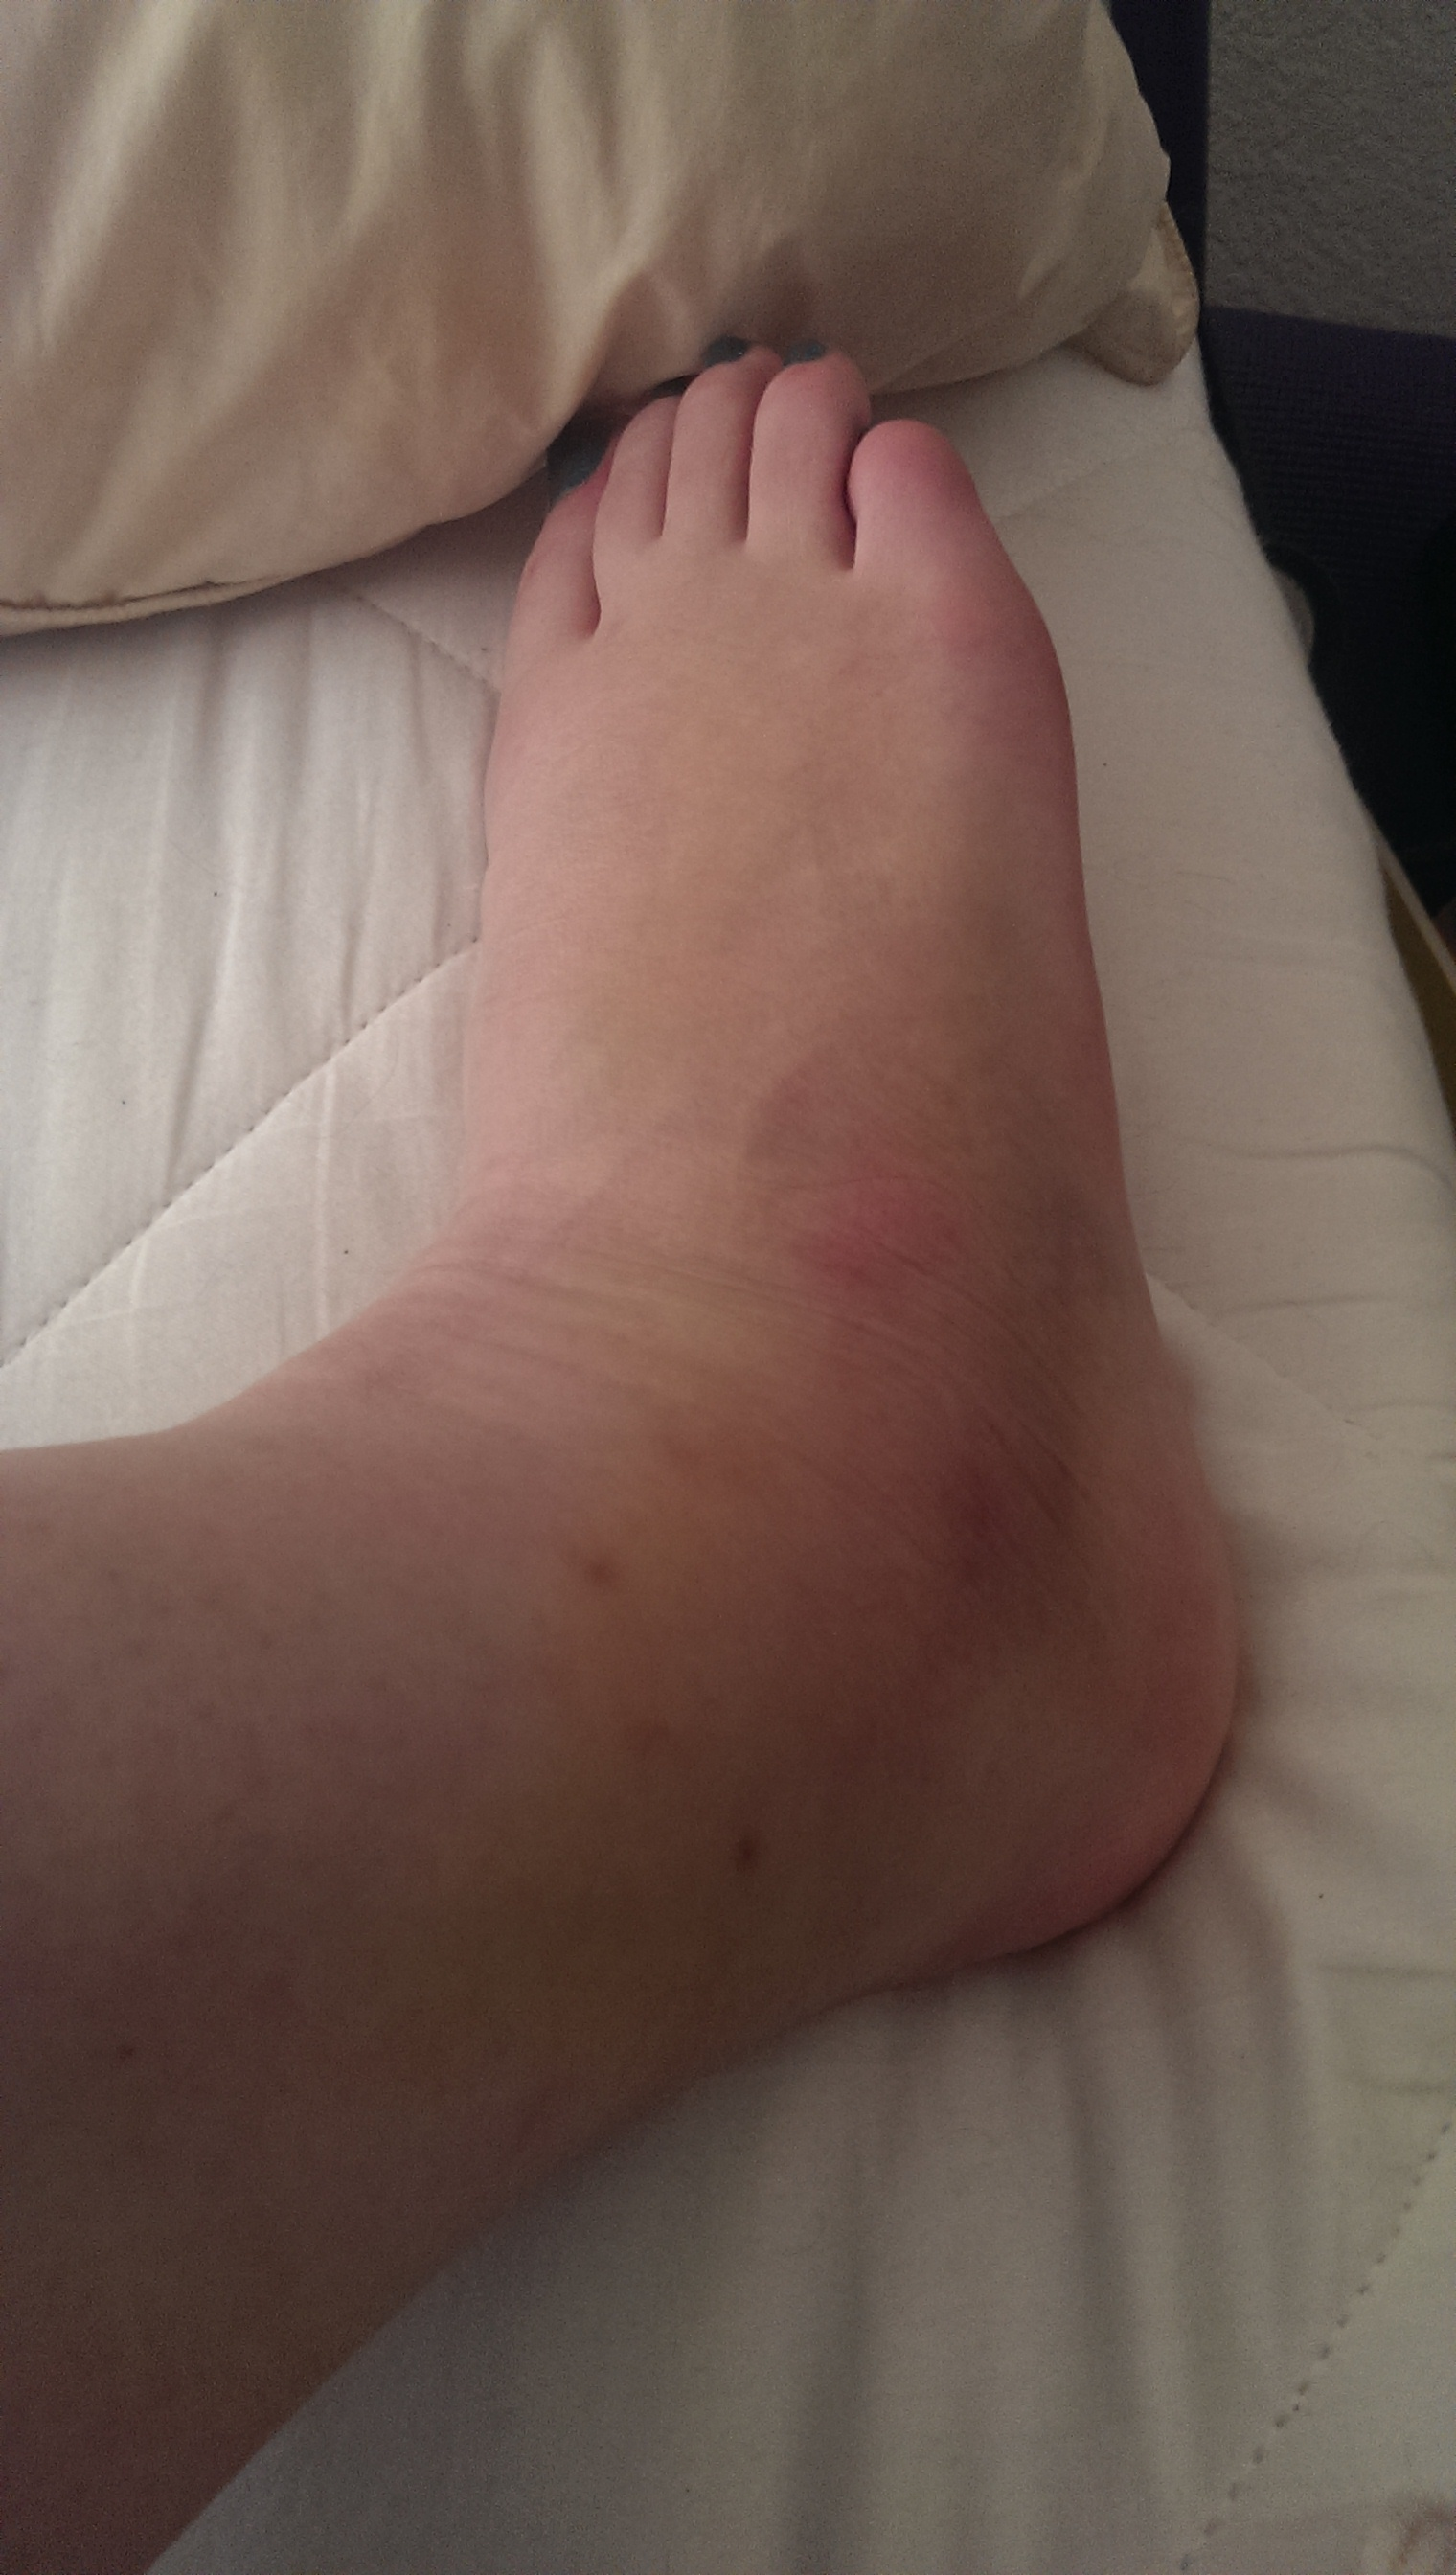 Cankle!